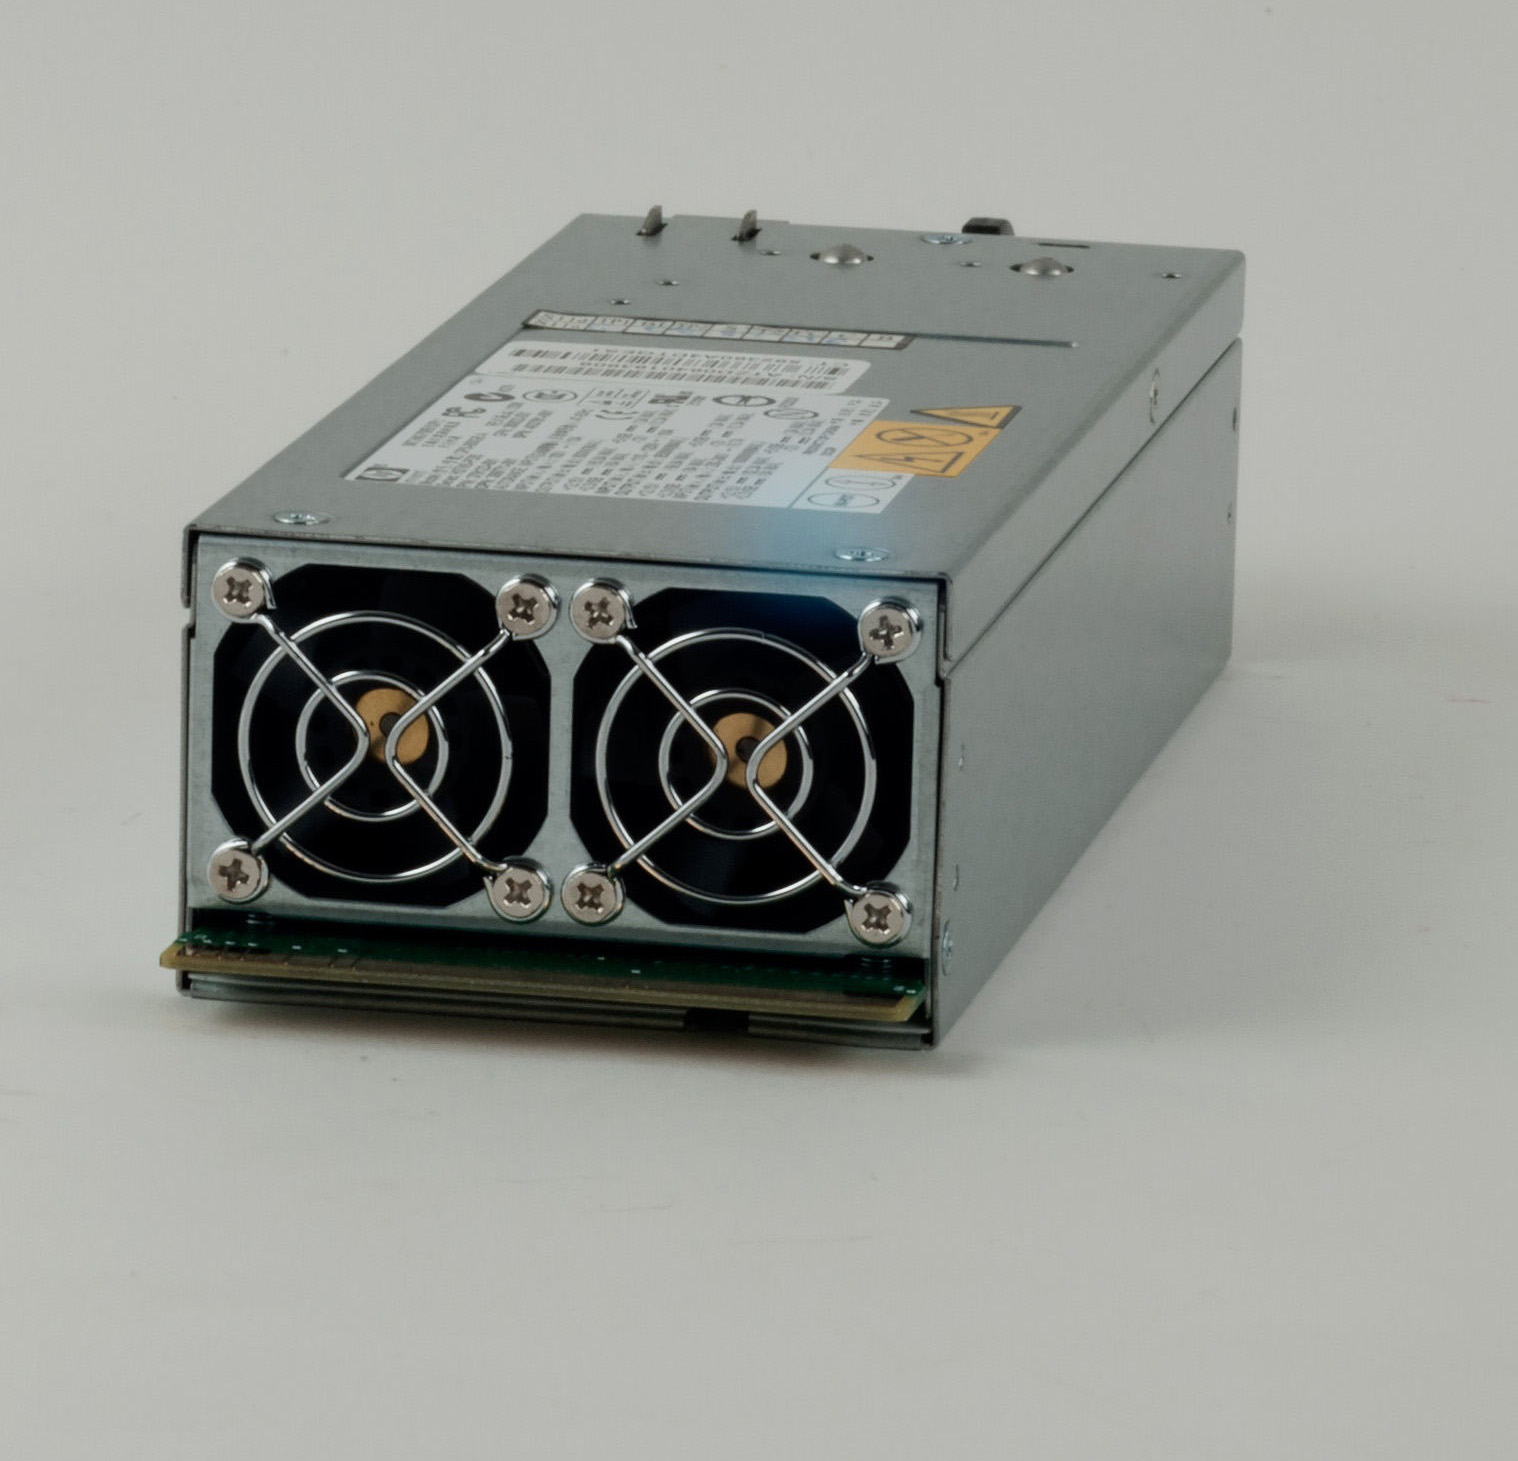 Hewlett Packard HP 1000w Server Power Supply online in Pakistan